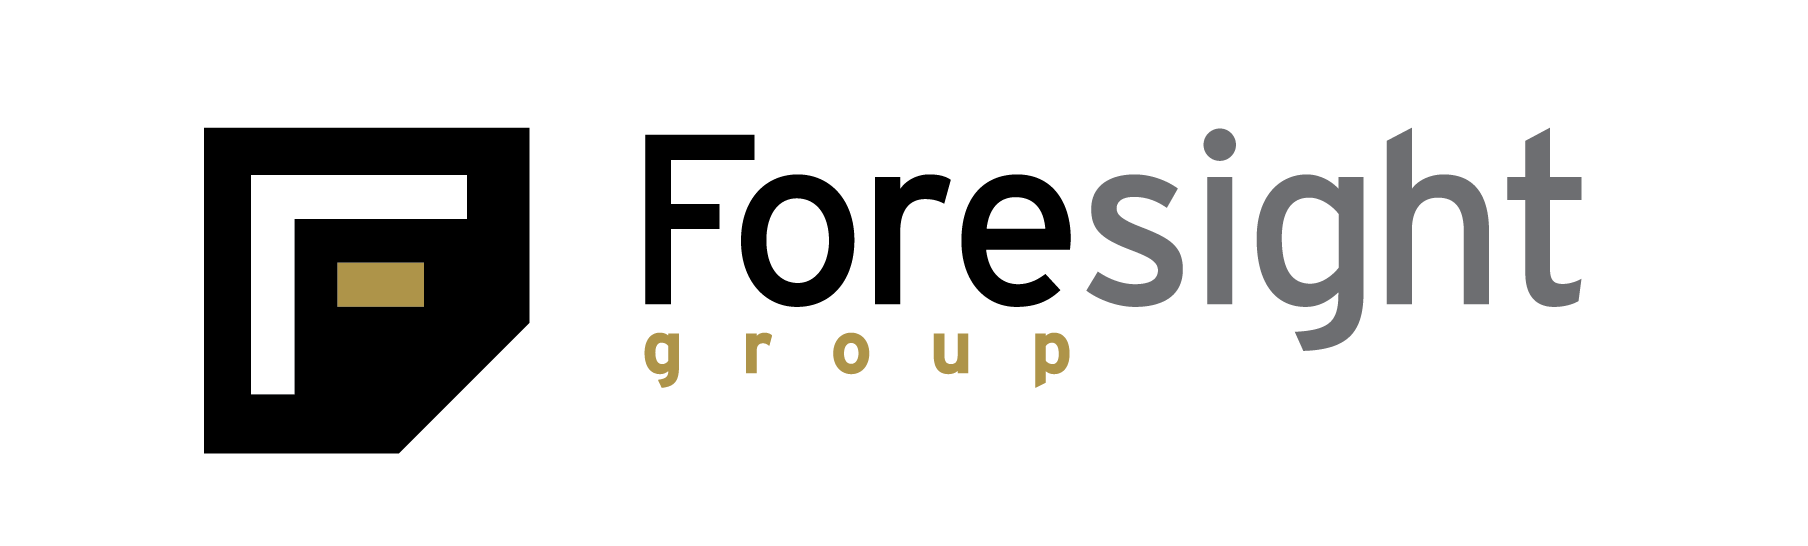 Foresight Group Transparent.png